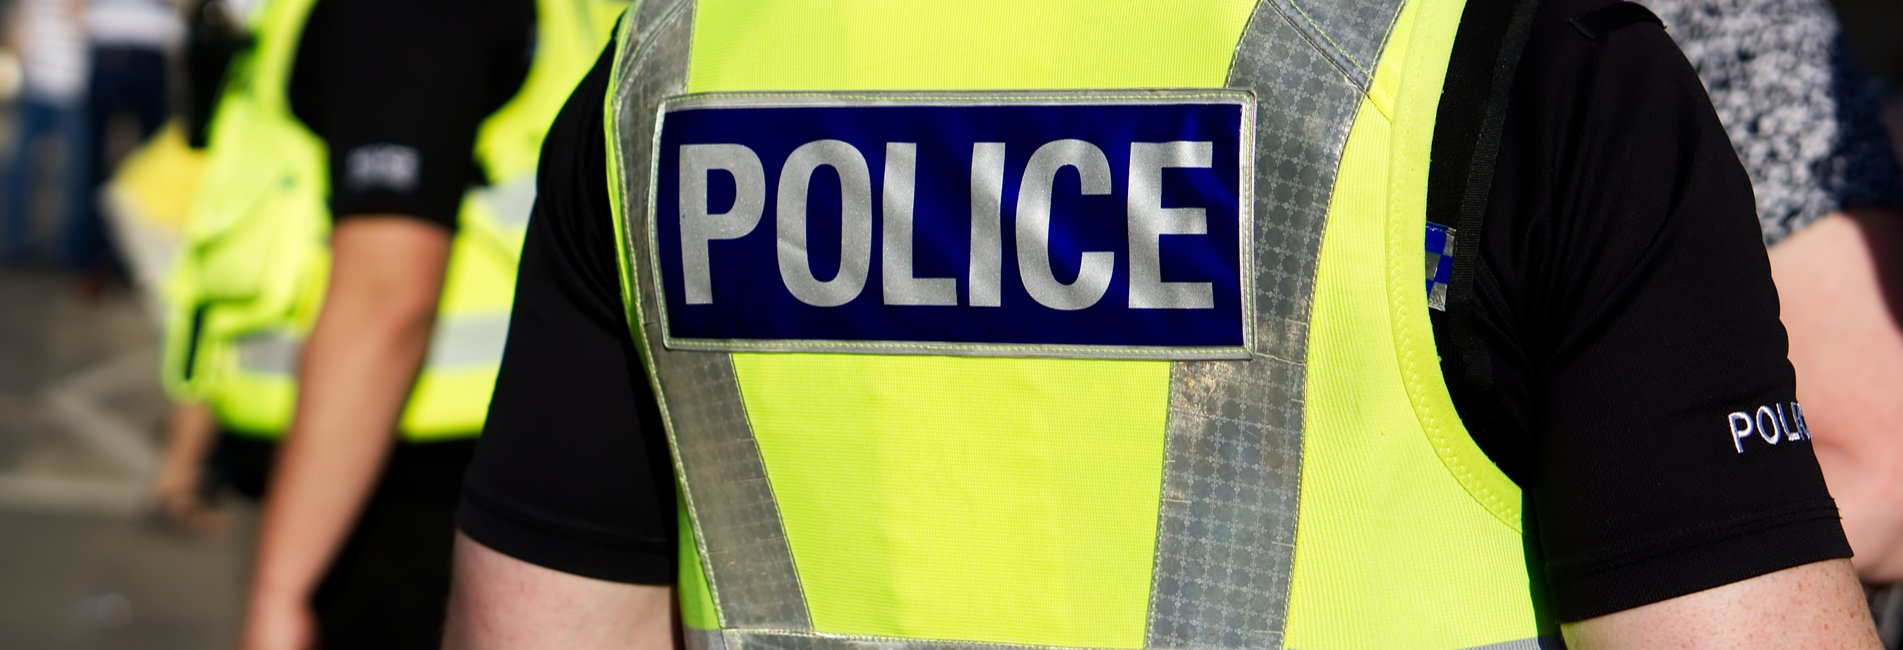 Police at Highest Risk for Suicide Than any Profession Resurgence – Police suicide rates are among the highest in all professions, but there is help available for officers who are struggling.